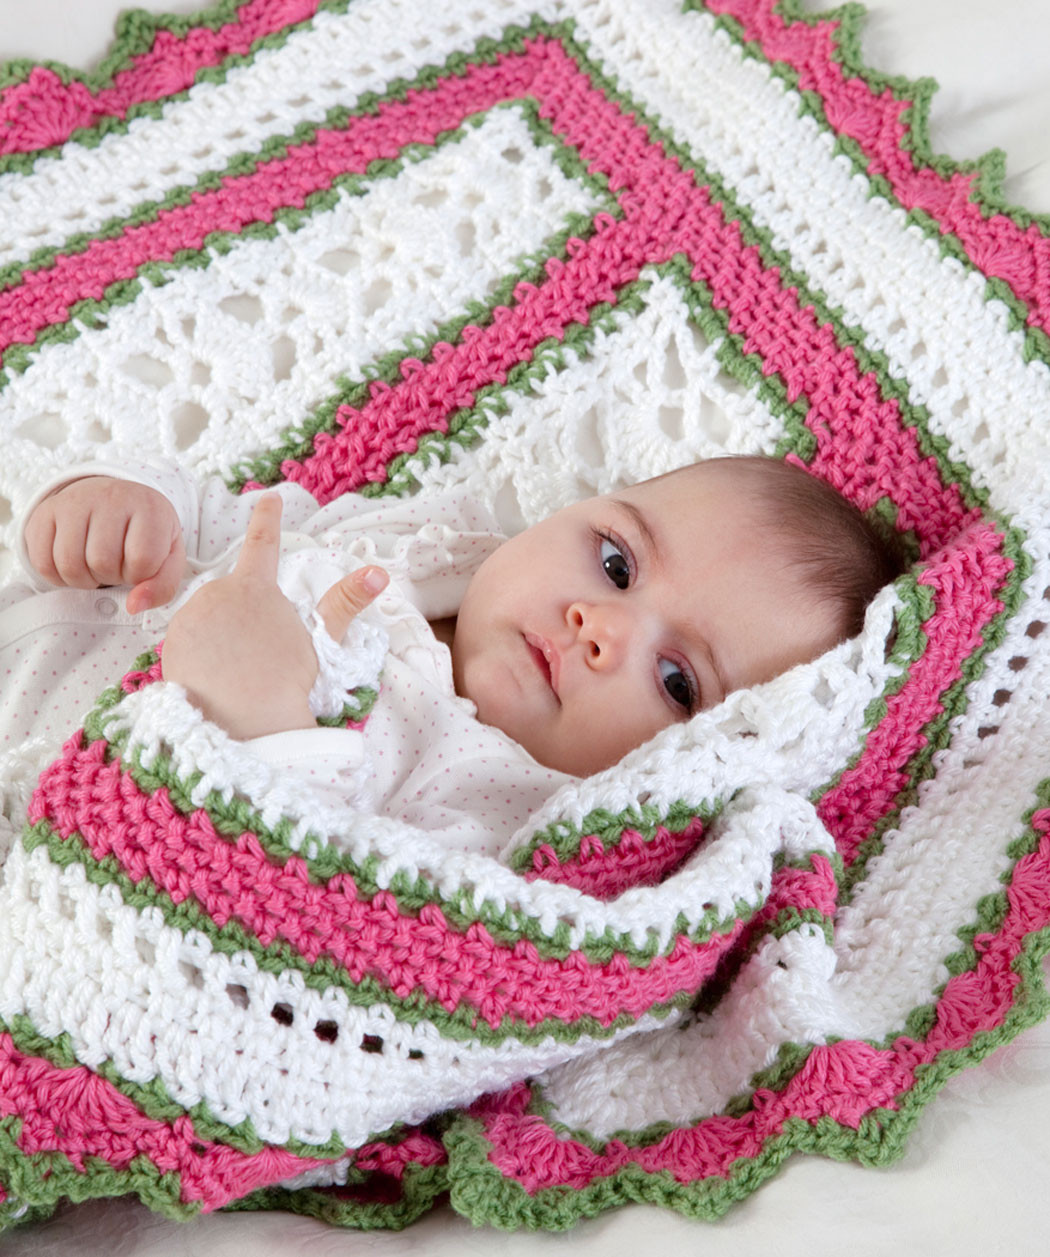 Free Crochet Baby Blankets New 10 Beautiful Baby Blanket Free Patterns Of Incredible 43 Ideas Free Crochet Baby Blankets